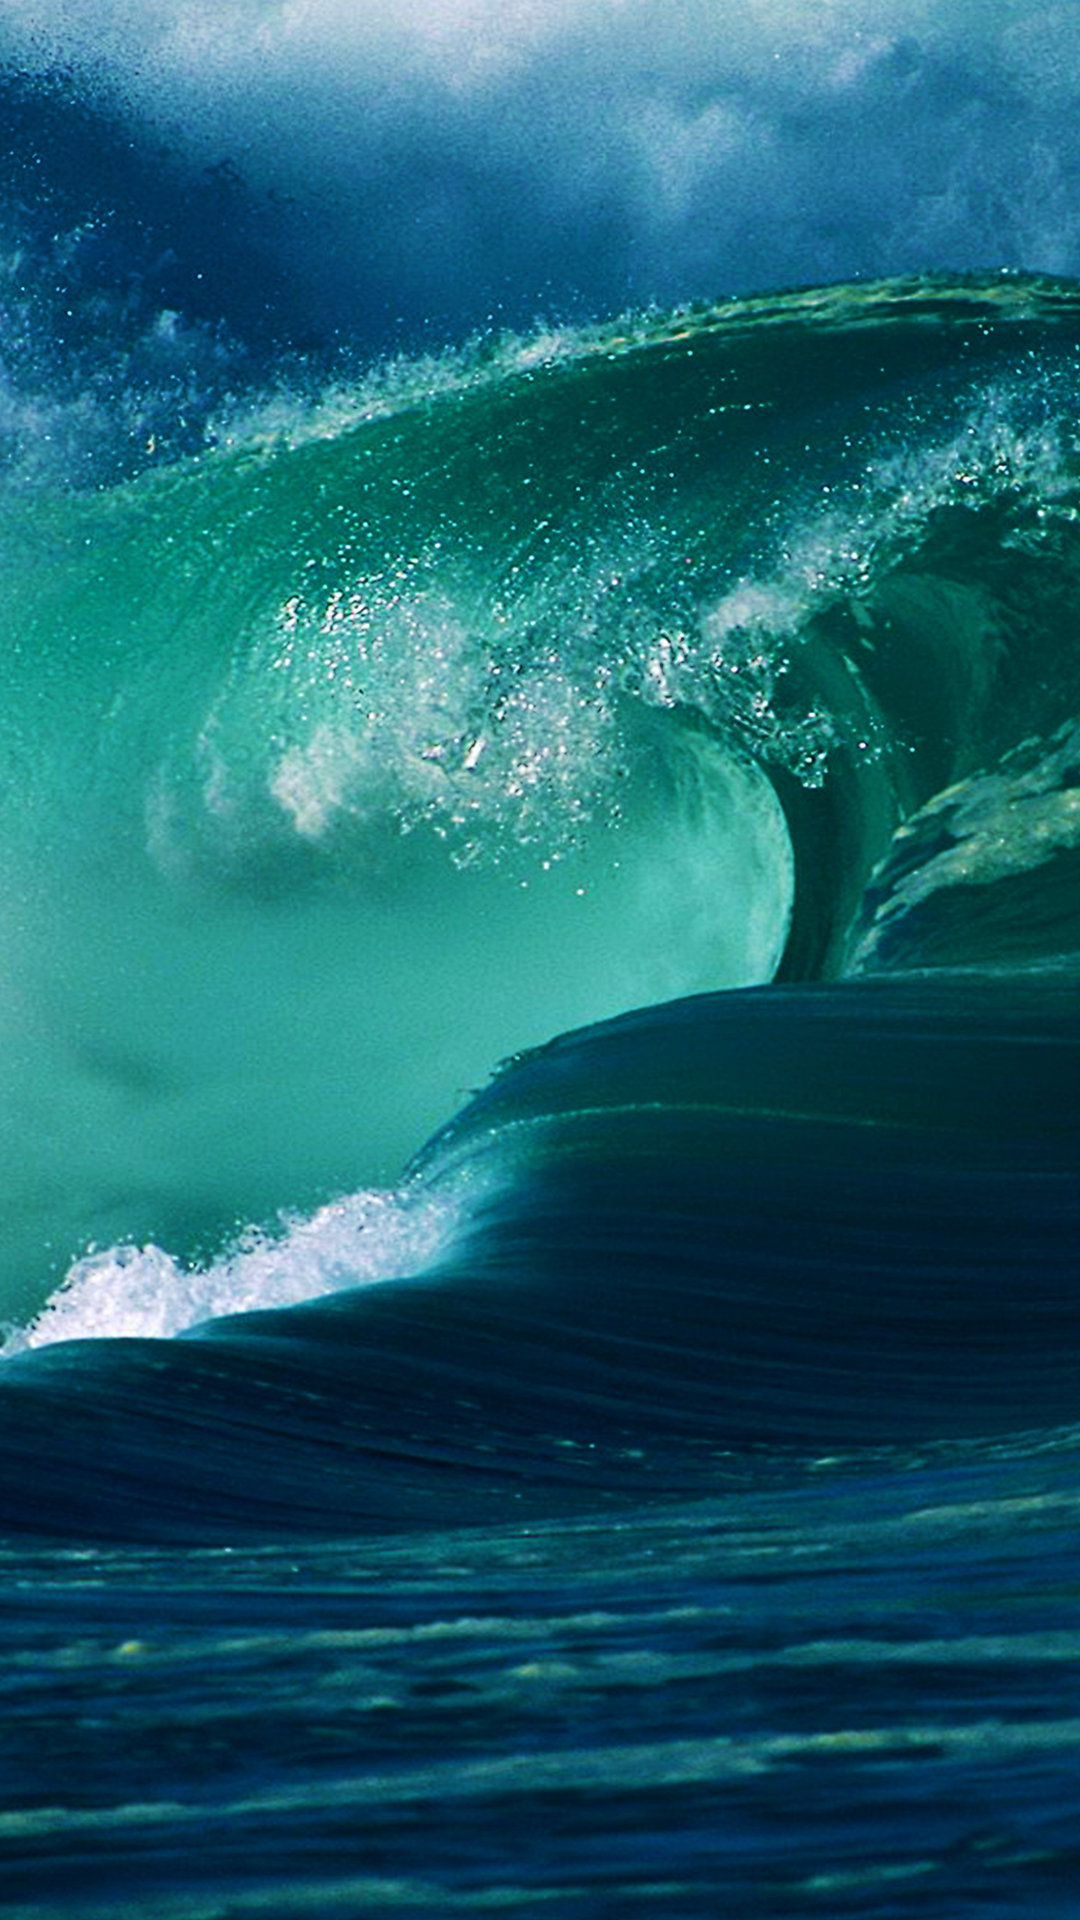 download free mobile wallpaper for your mobile phone,wave,wind wave,ocean,water,sea